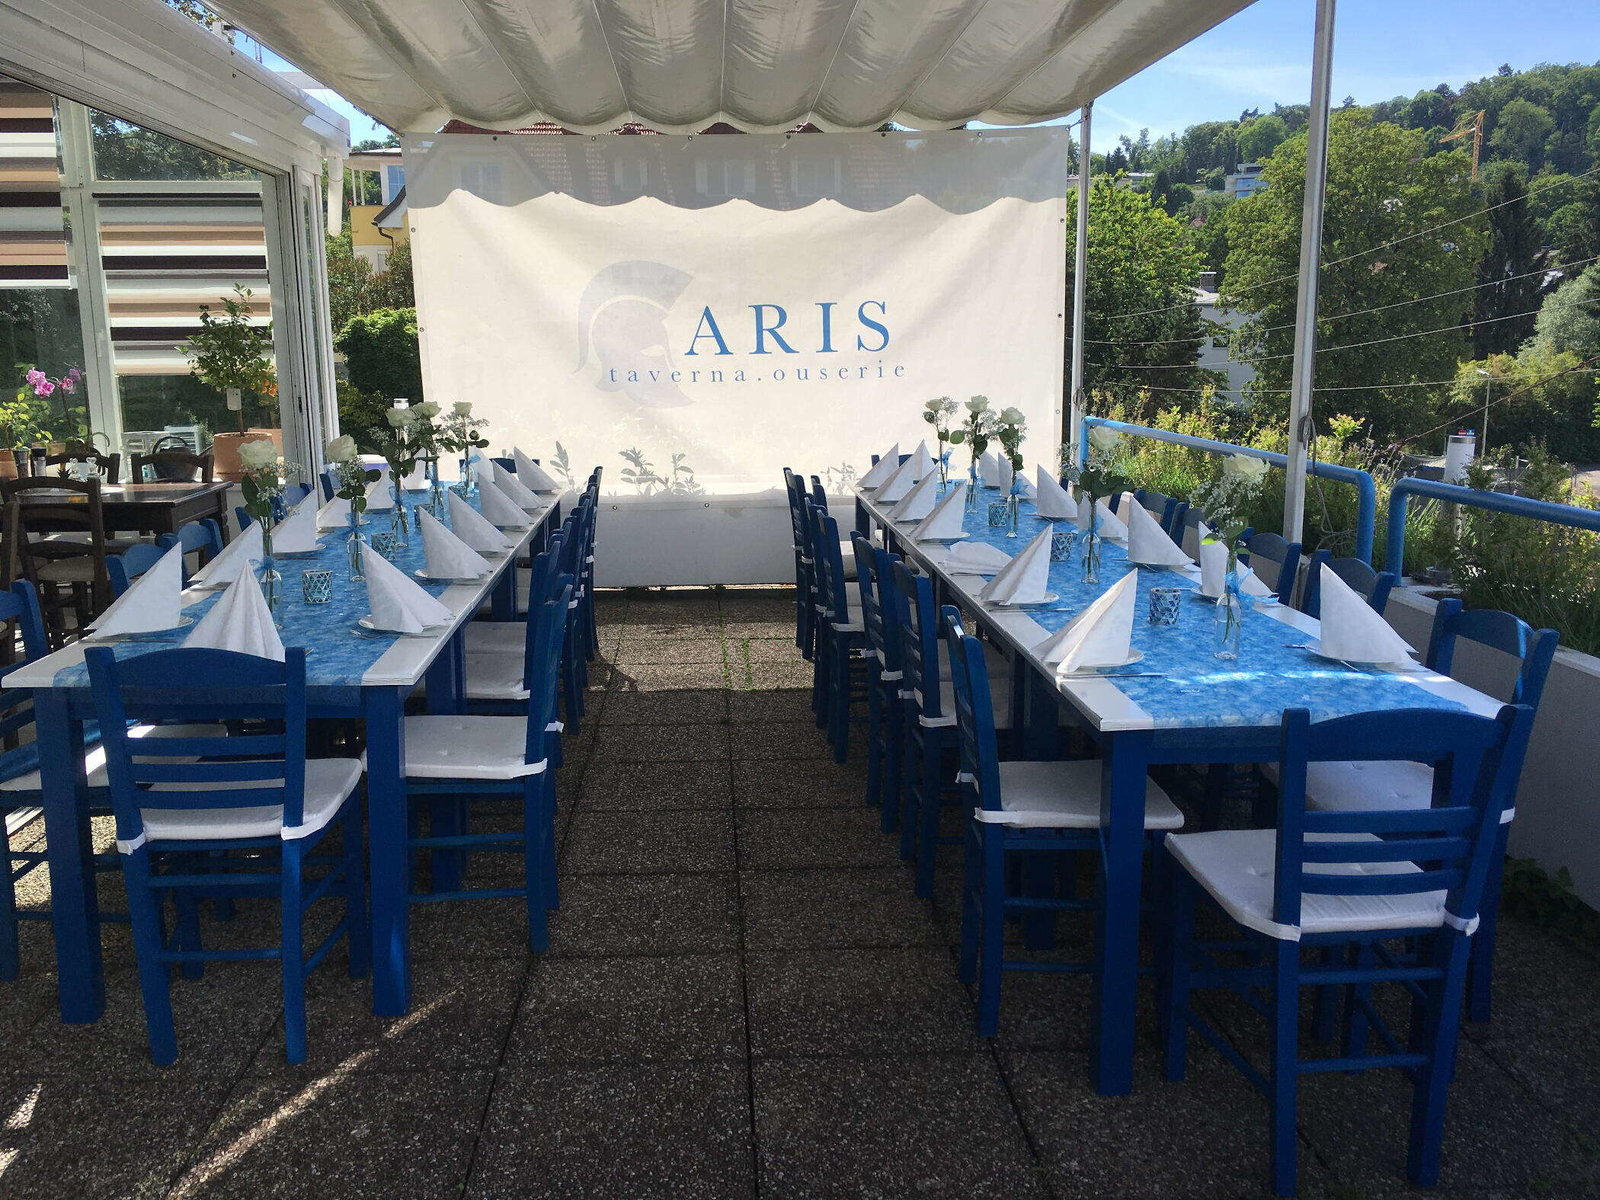 ARIS Taverna Ouserie in Linz